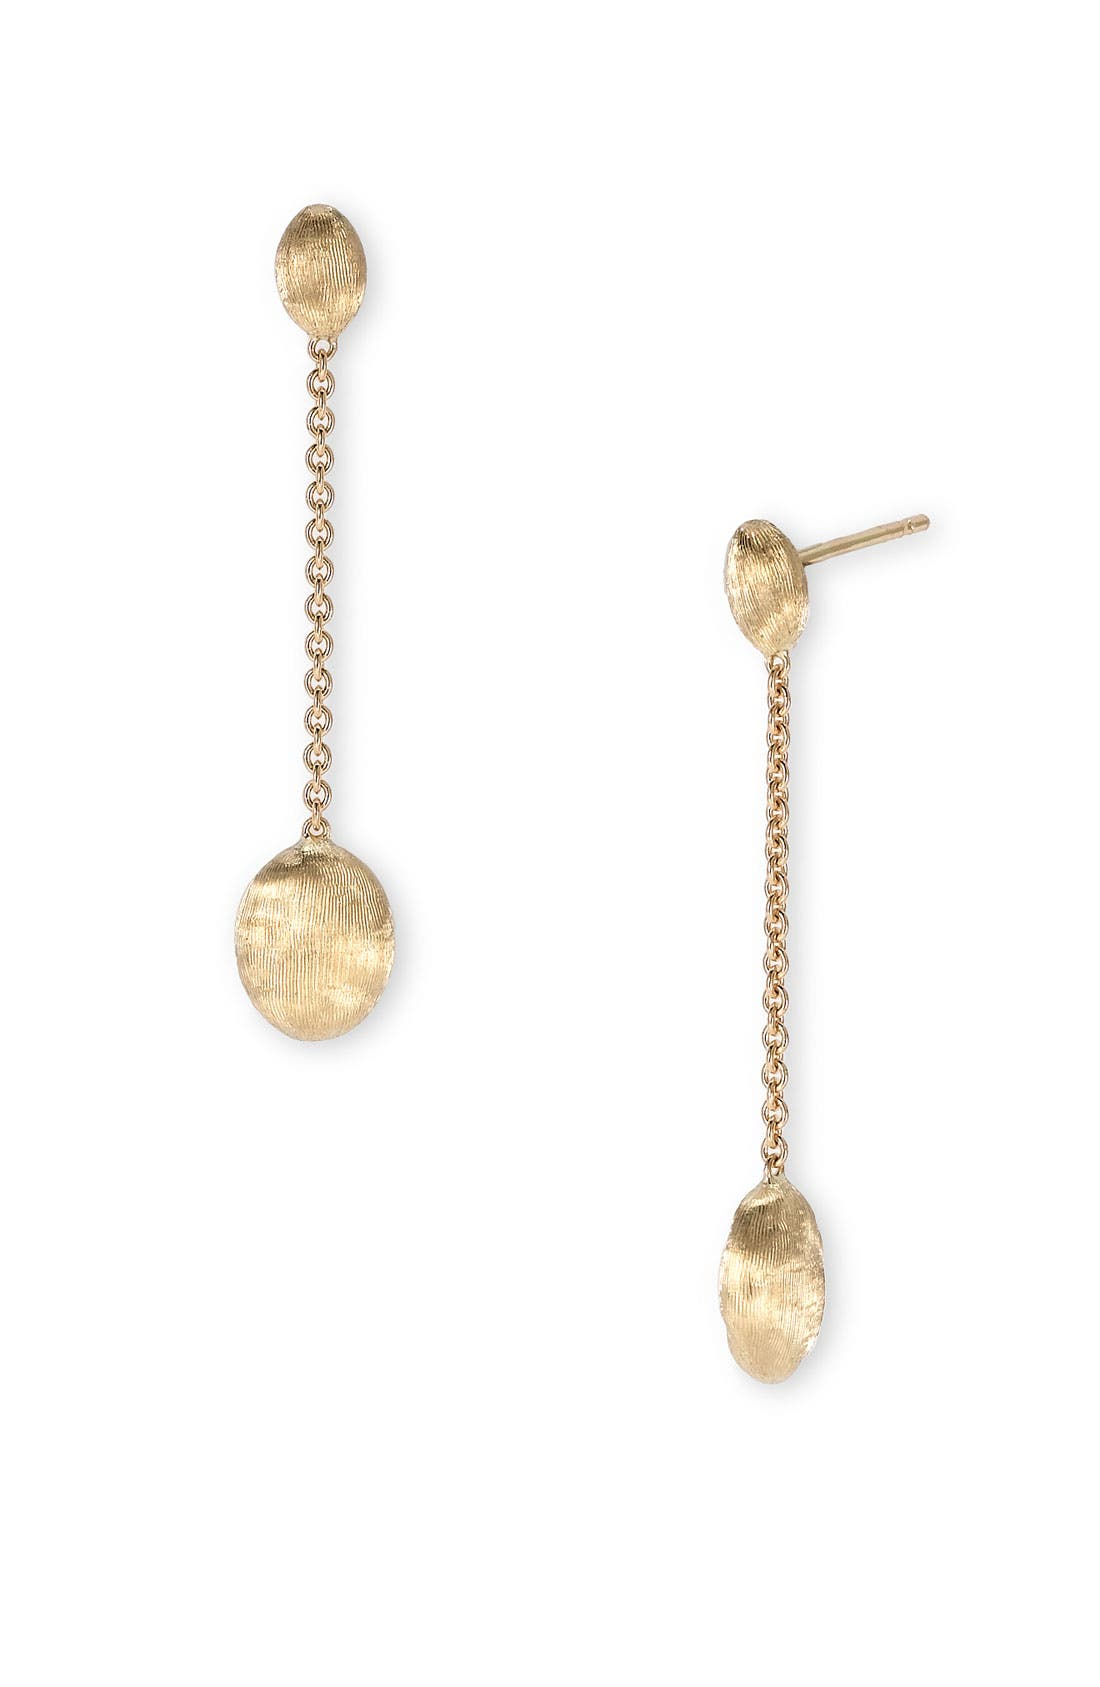 Main Image - Marco Bicego 'Siviglia' Linear Earrings